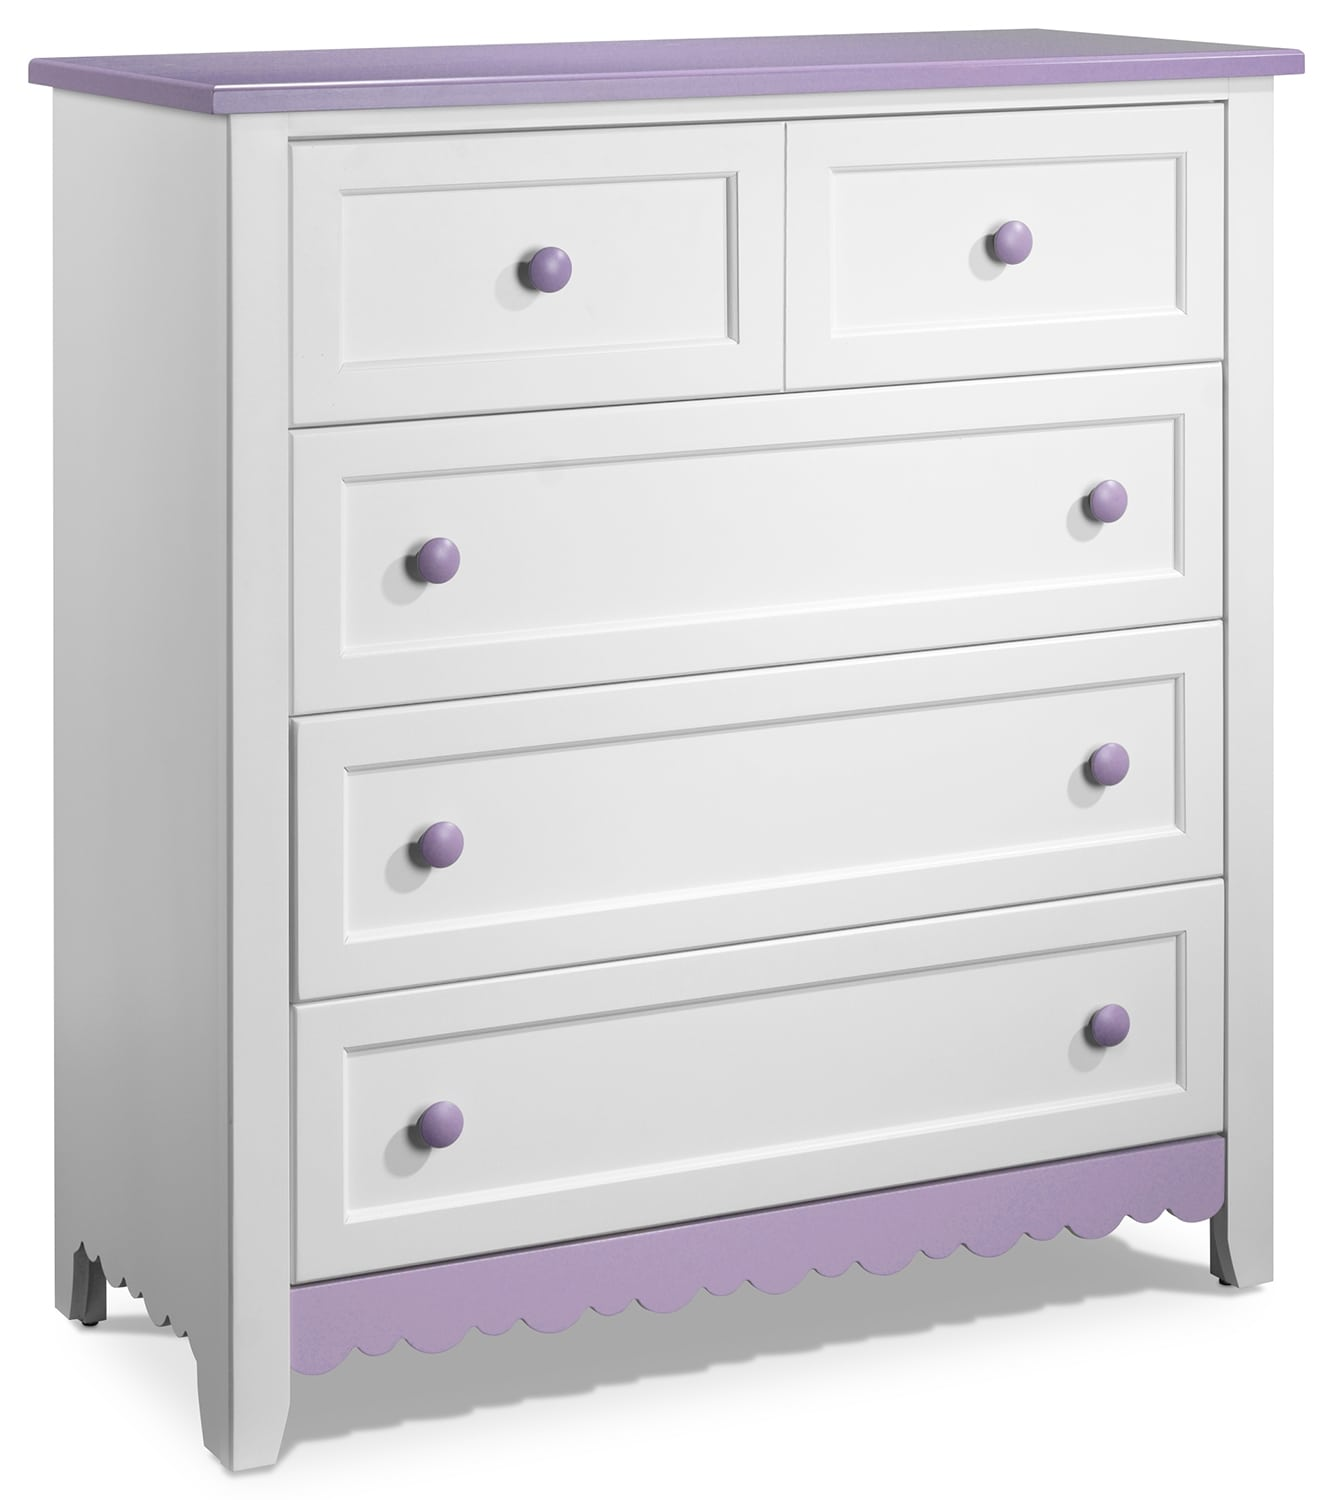 Kids Furniture - Sweetdreams Chest - White and Lavender